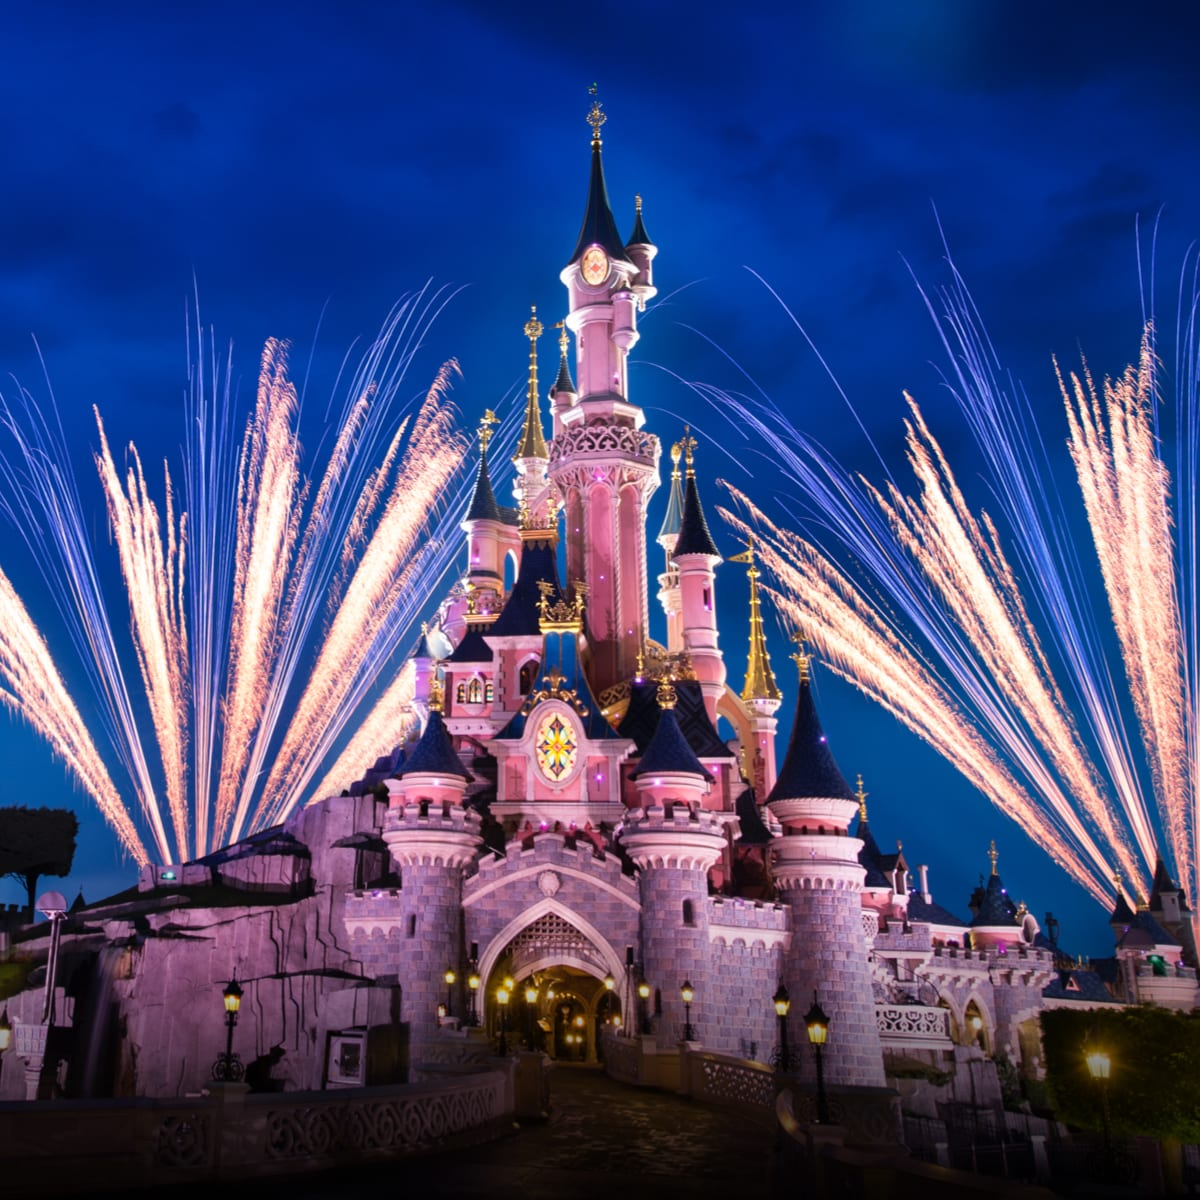 Sleeping Beauty Castle at Disneyland® Paris